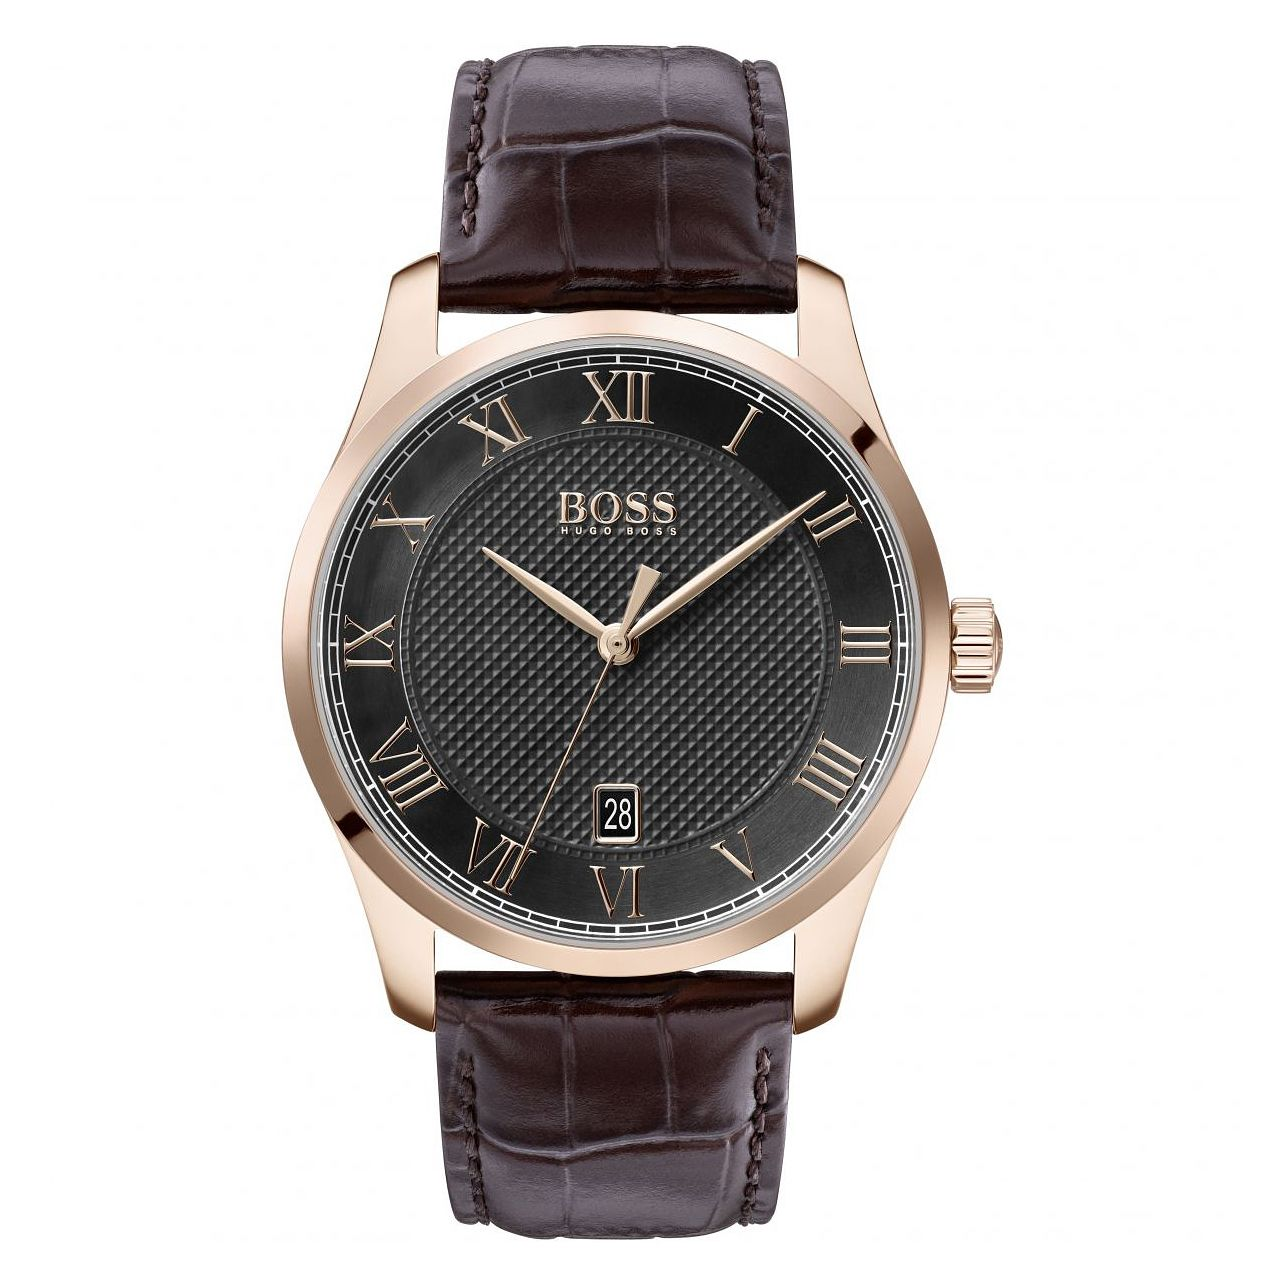 BOSS Master Men's Brown Leather Strap Watch - Product number 2776790